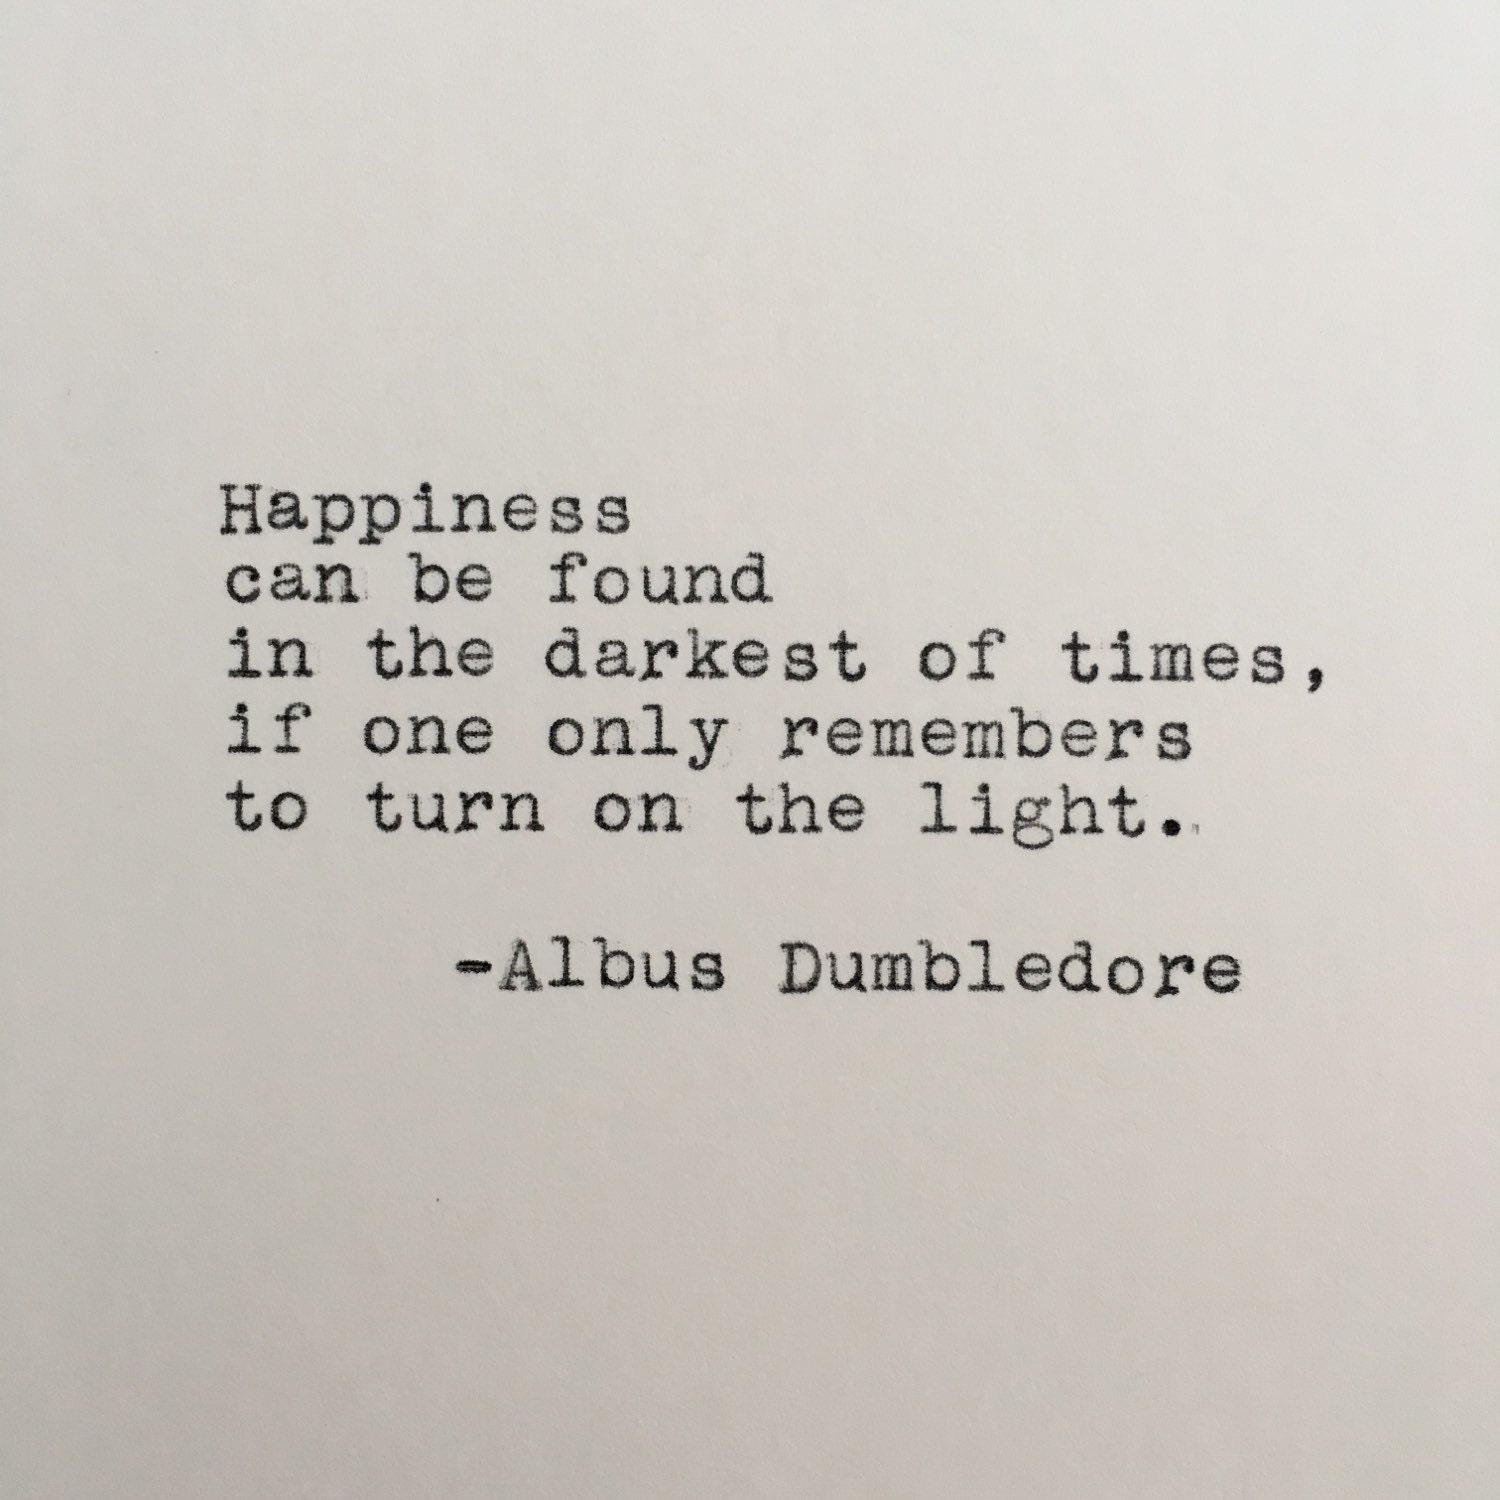 Happiness Can Be Found In The Darkest Of Times Quote: Harry Potter Happiness Quote Albus Dumbledore Typed On